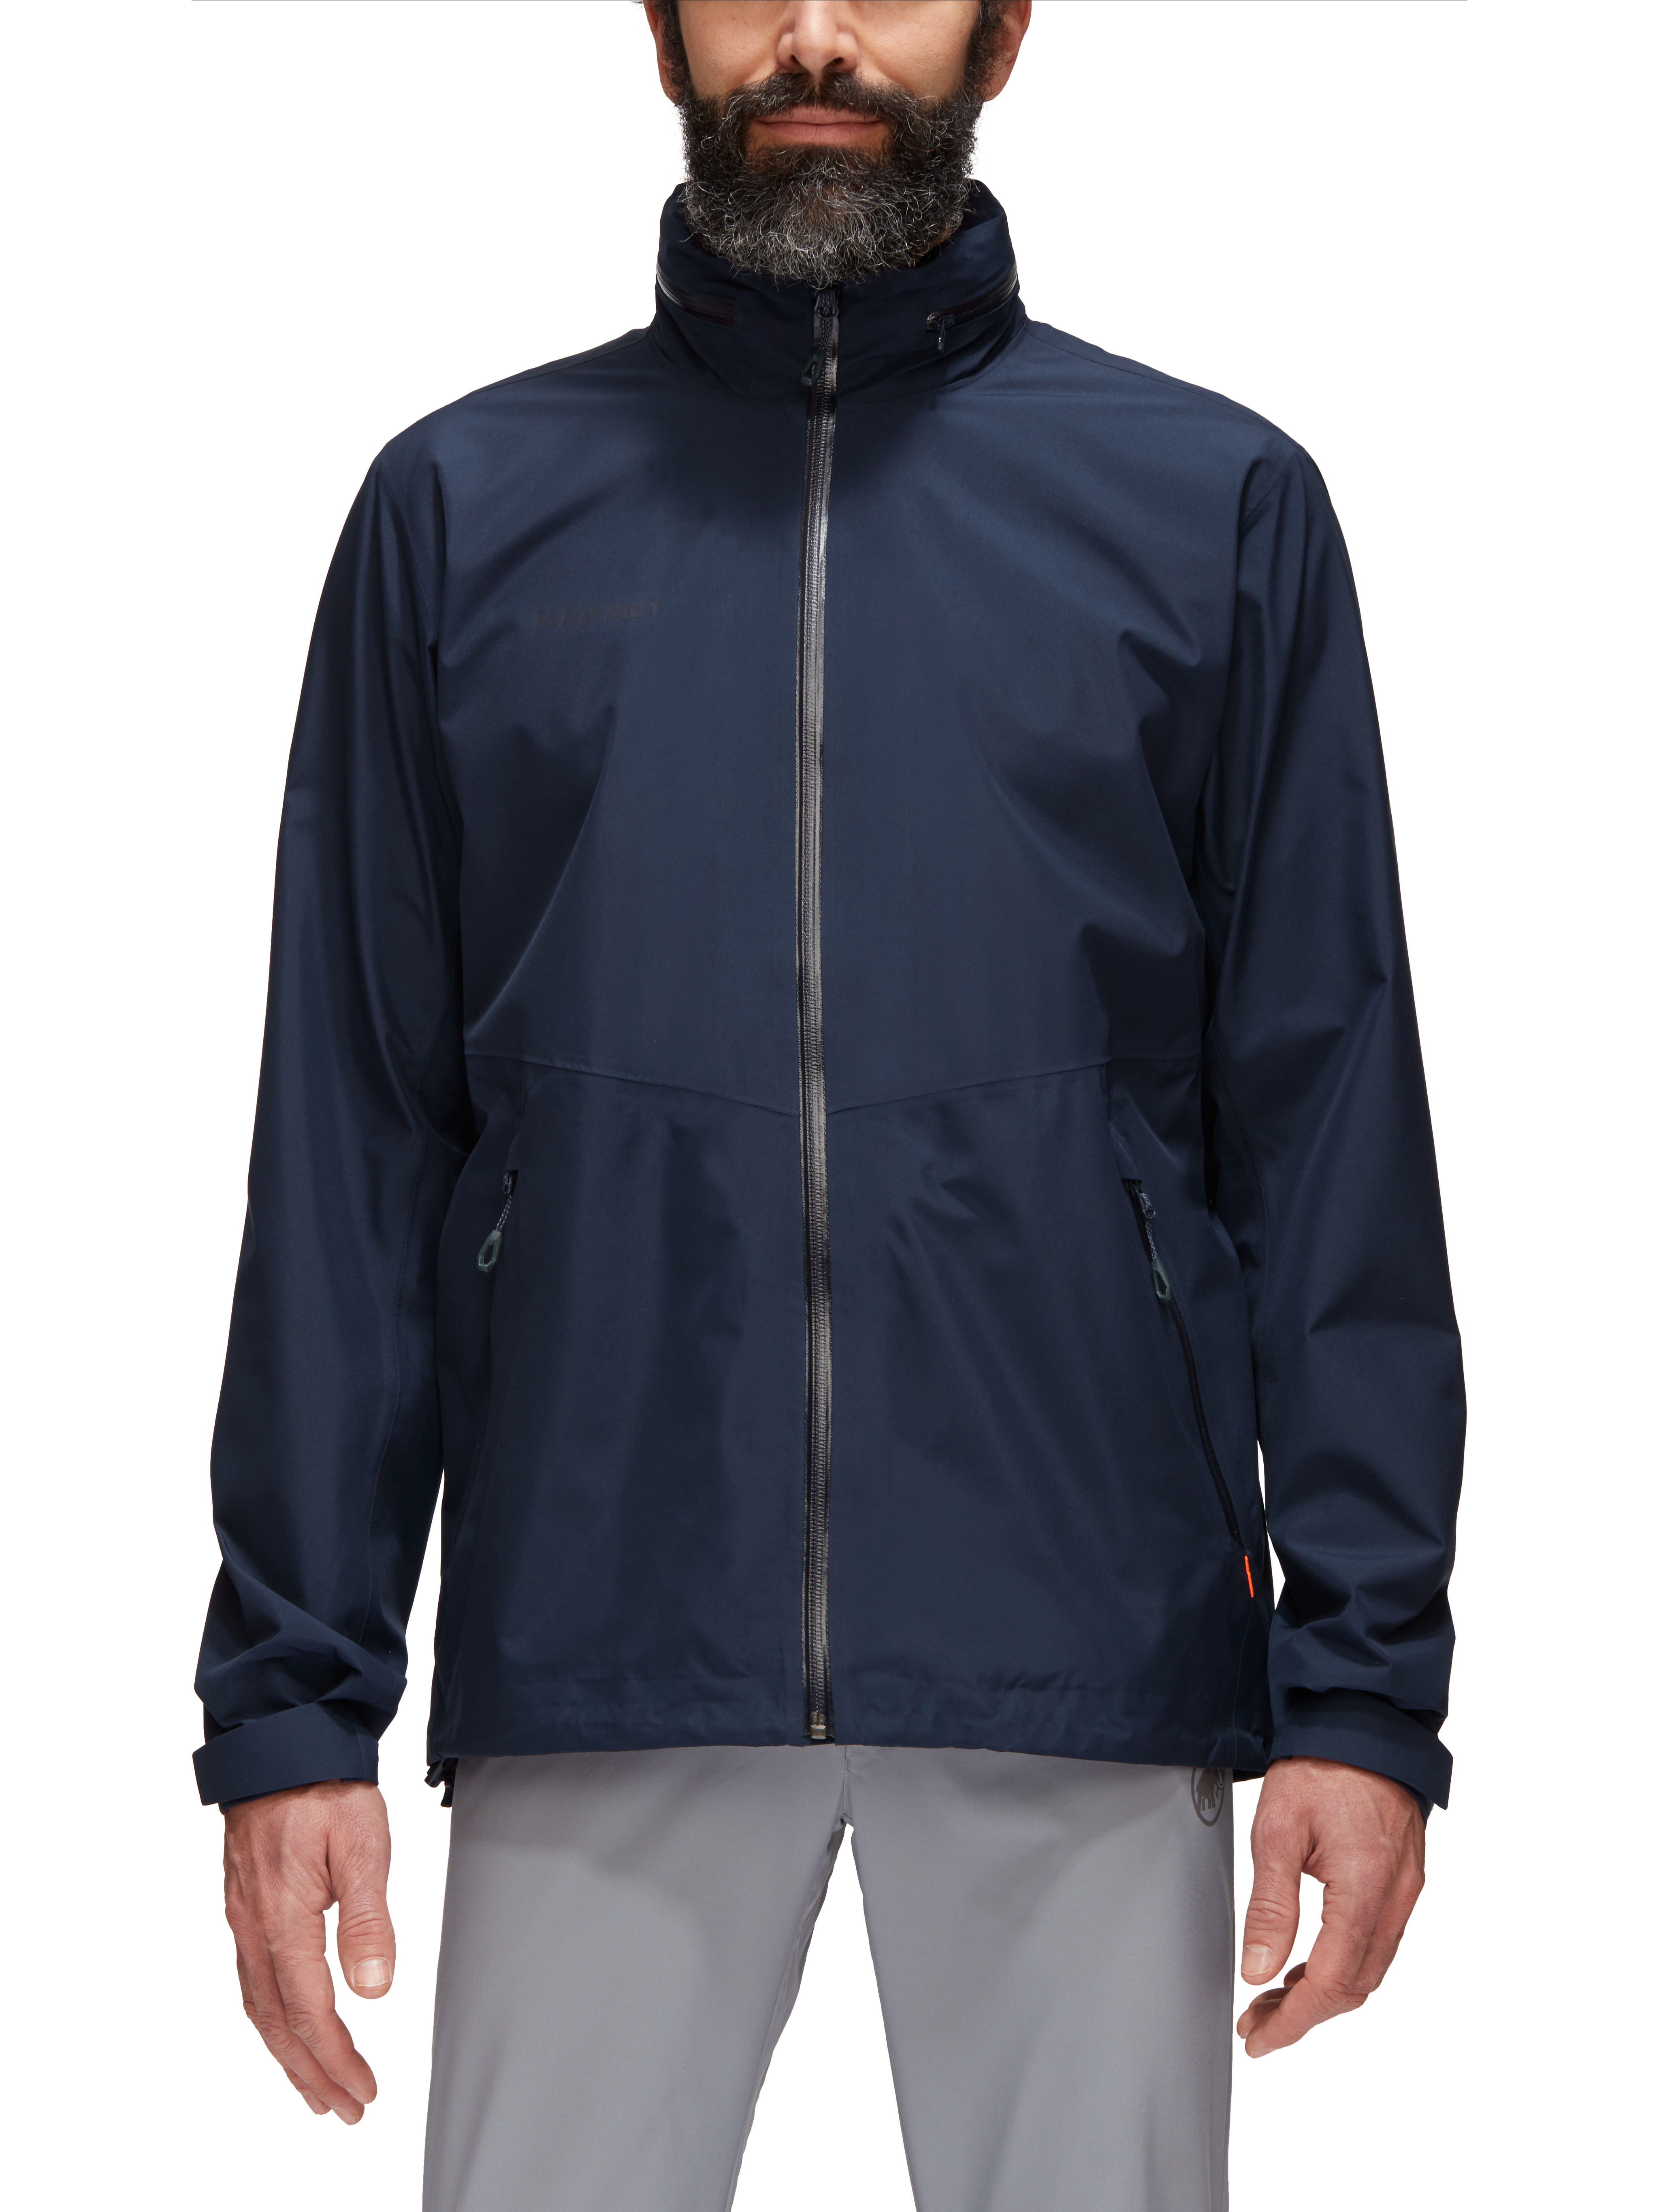 Ayako Tour HS Hooded Jacket Men product image